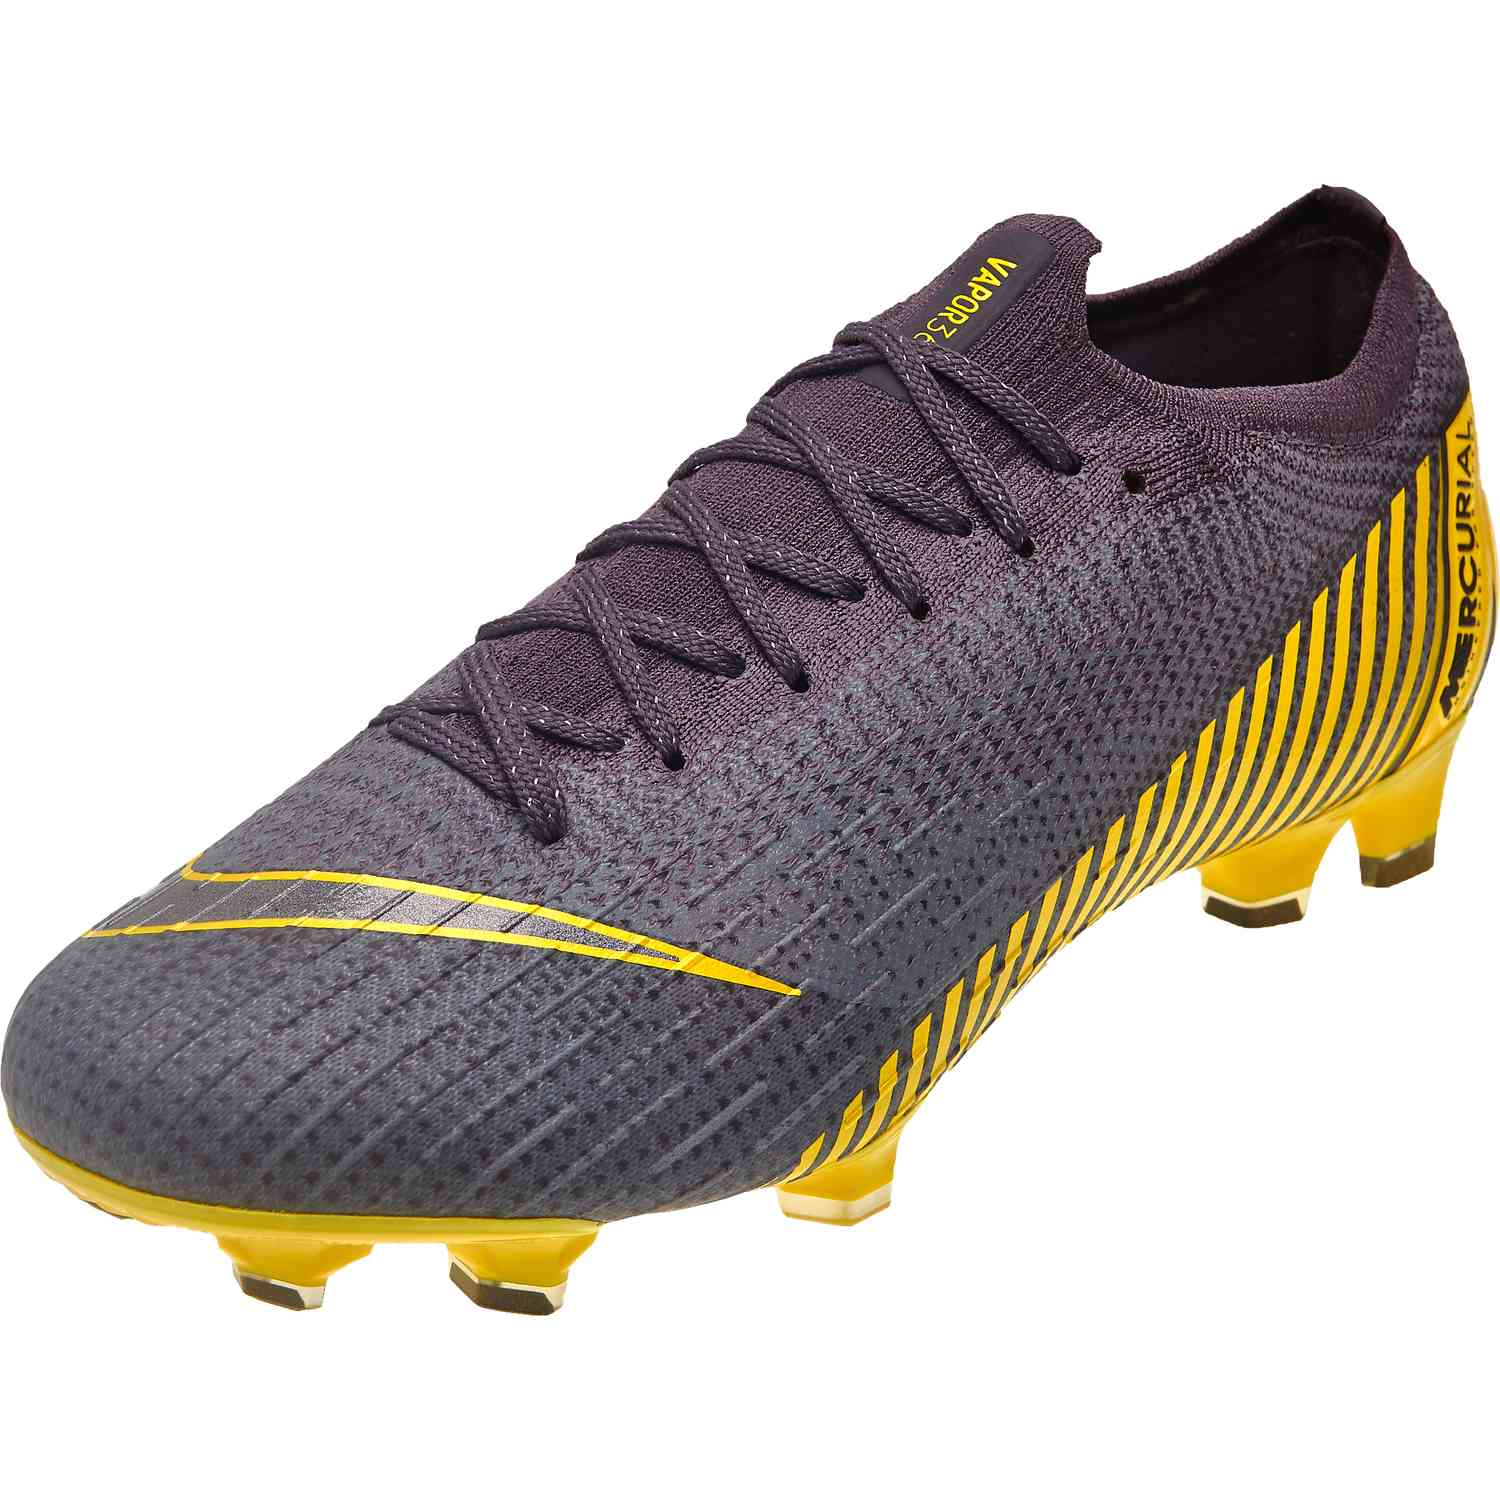 8948f64b5 Nike Mercurial Vapor 12 Elite FG - Game Over - SoccerPro